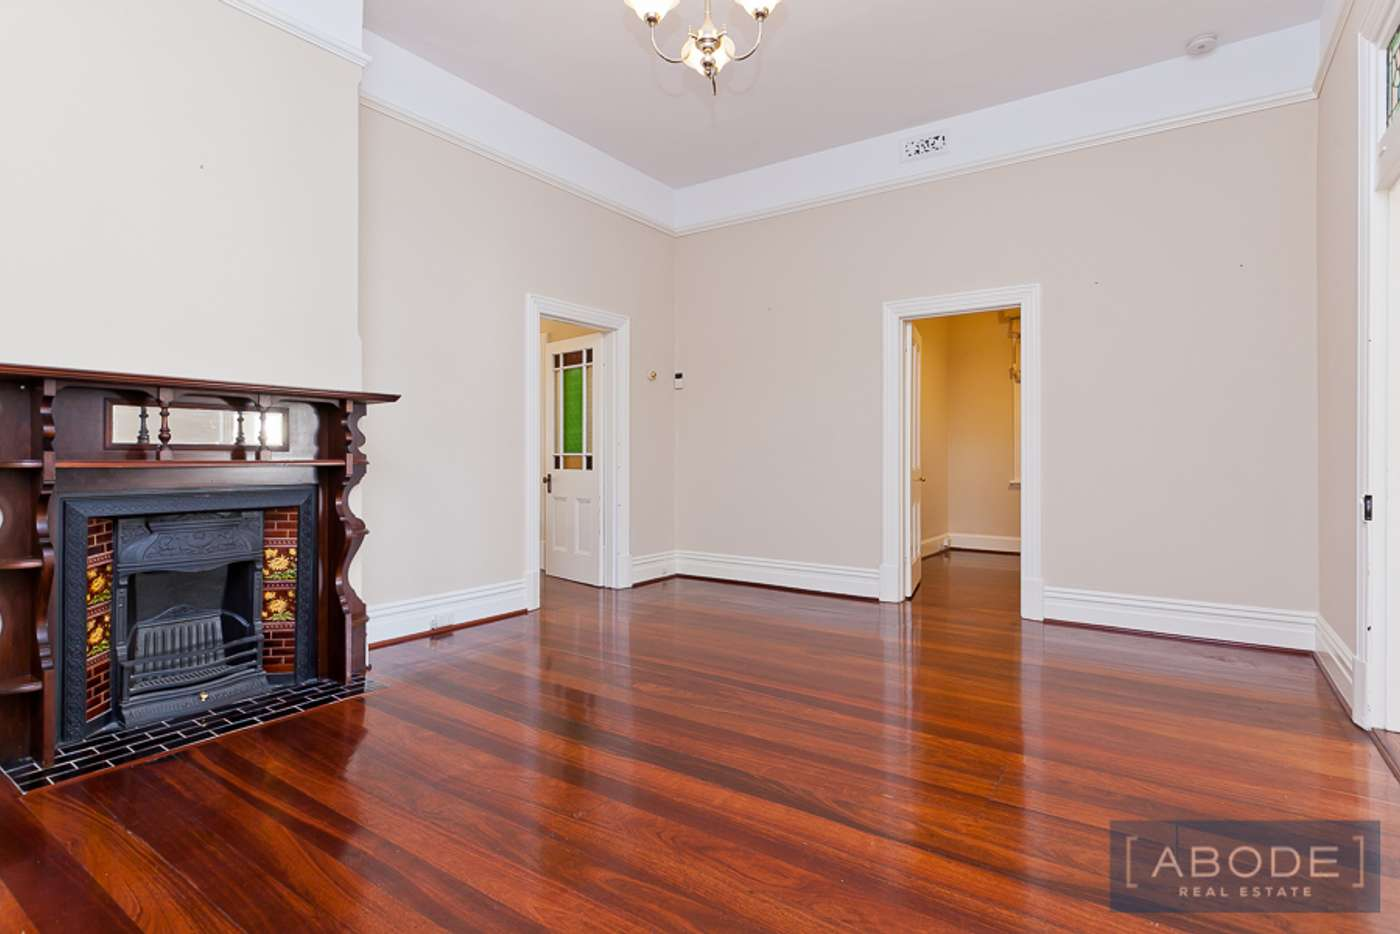 Main view of Homely house listing, 243 Roberts Road, Subiaco WA 6008